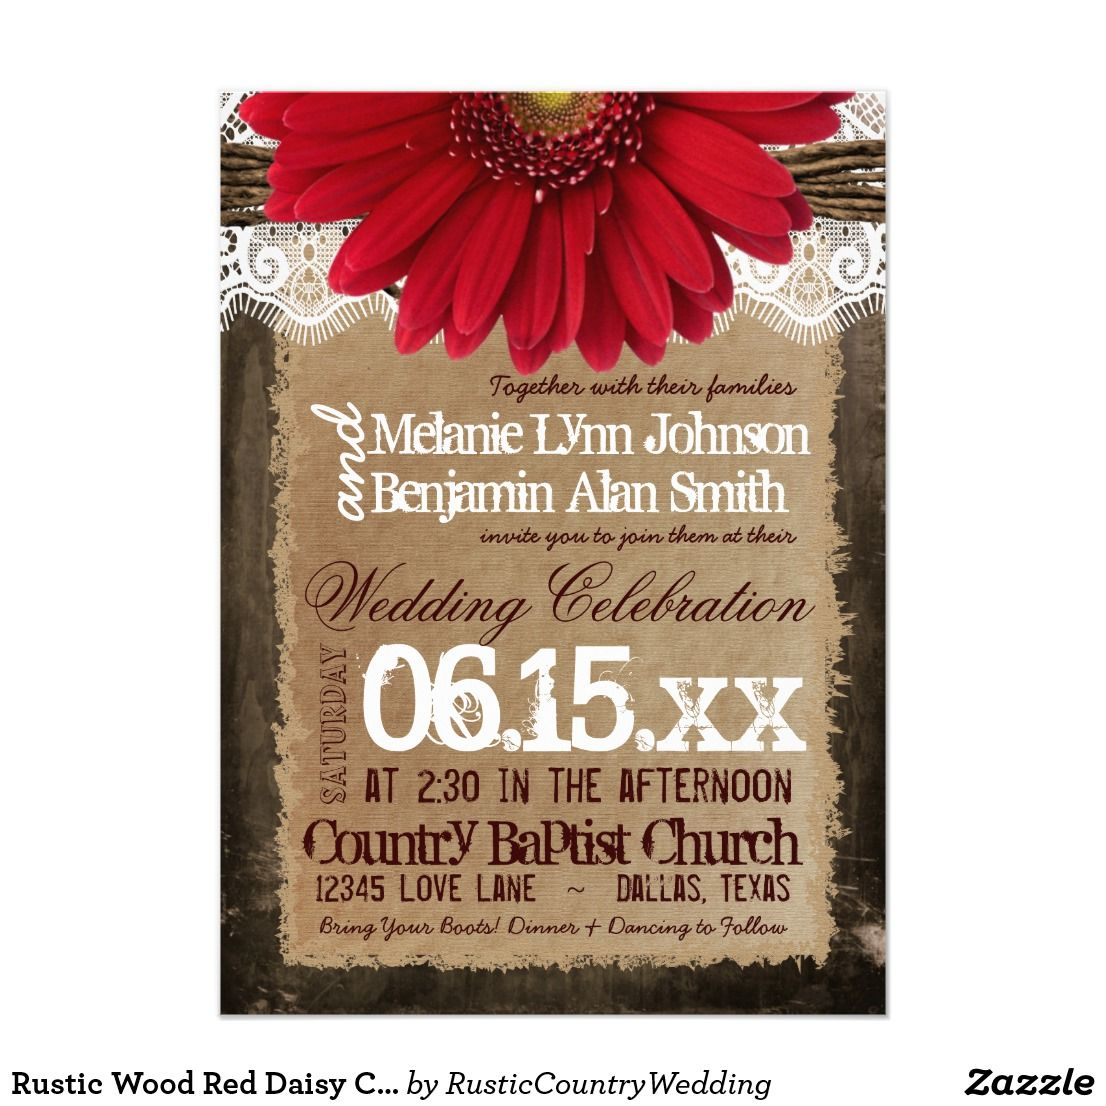 Rustic Wood Red Daisy Country Wedding Invitations | Wedding & Bridal ...